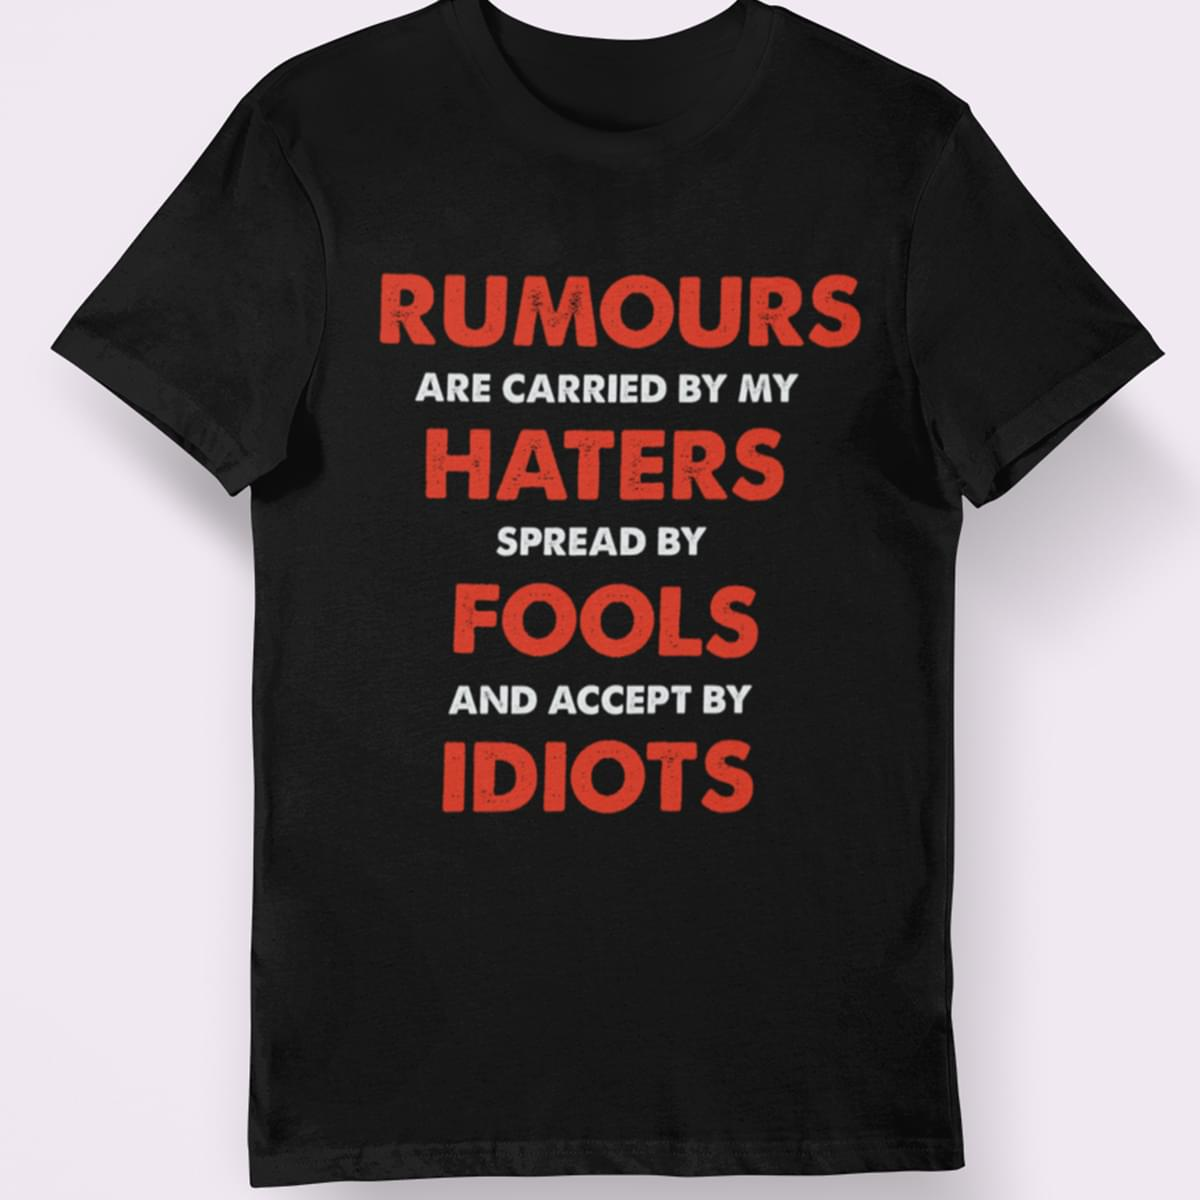 Rumours Are Carried By My Haters Spread By Fools And Accept By Idiots cotton t-shirt Hoodie Mug